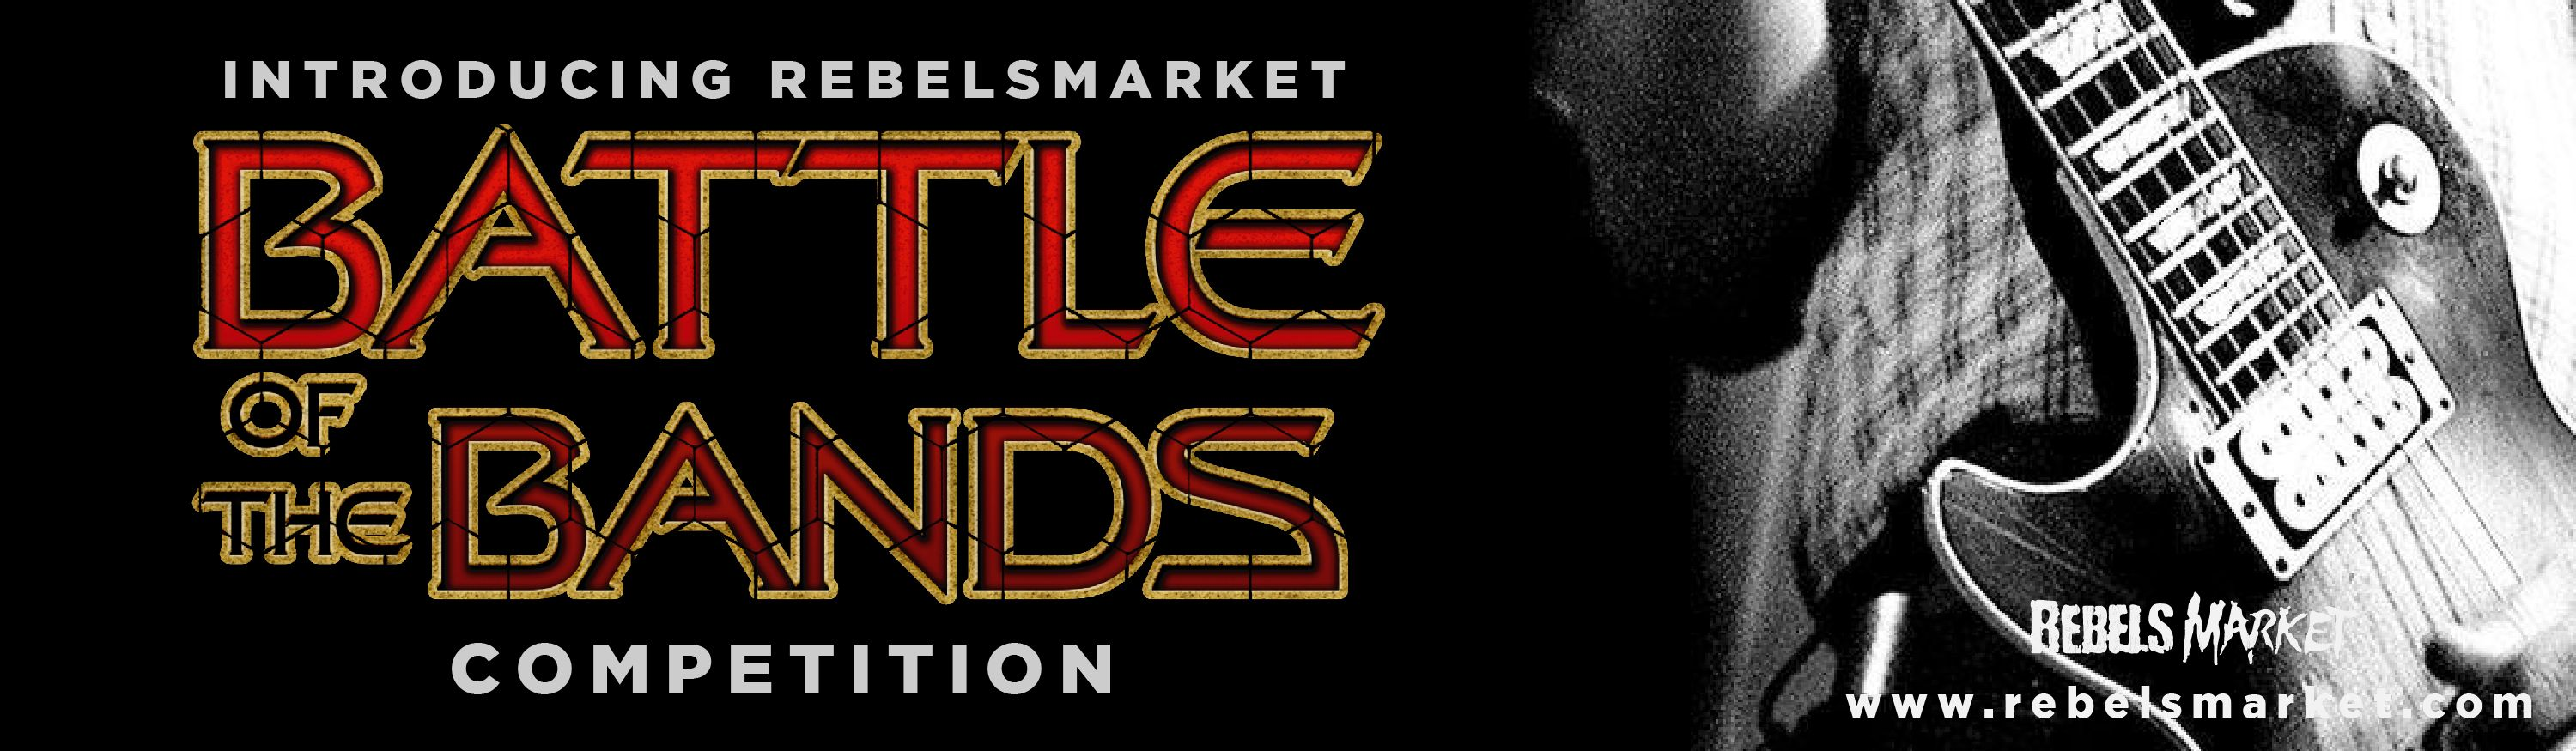 Introducing the rebelsmarket battle of the bands competition